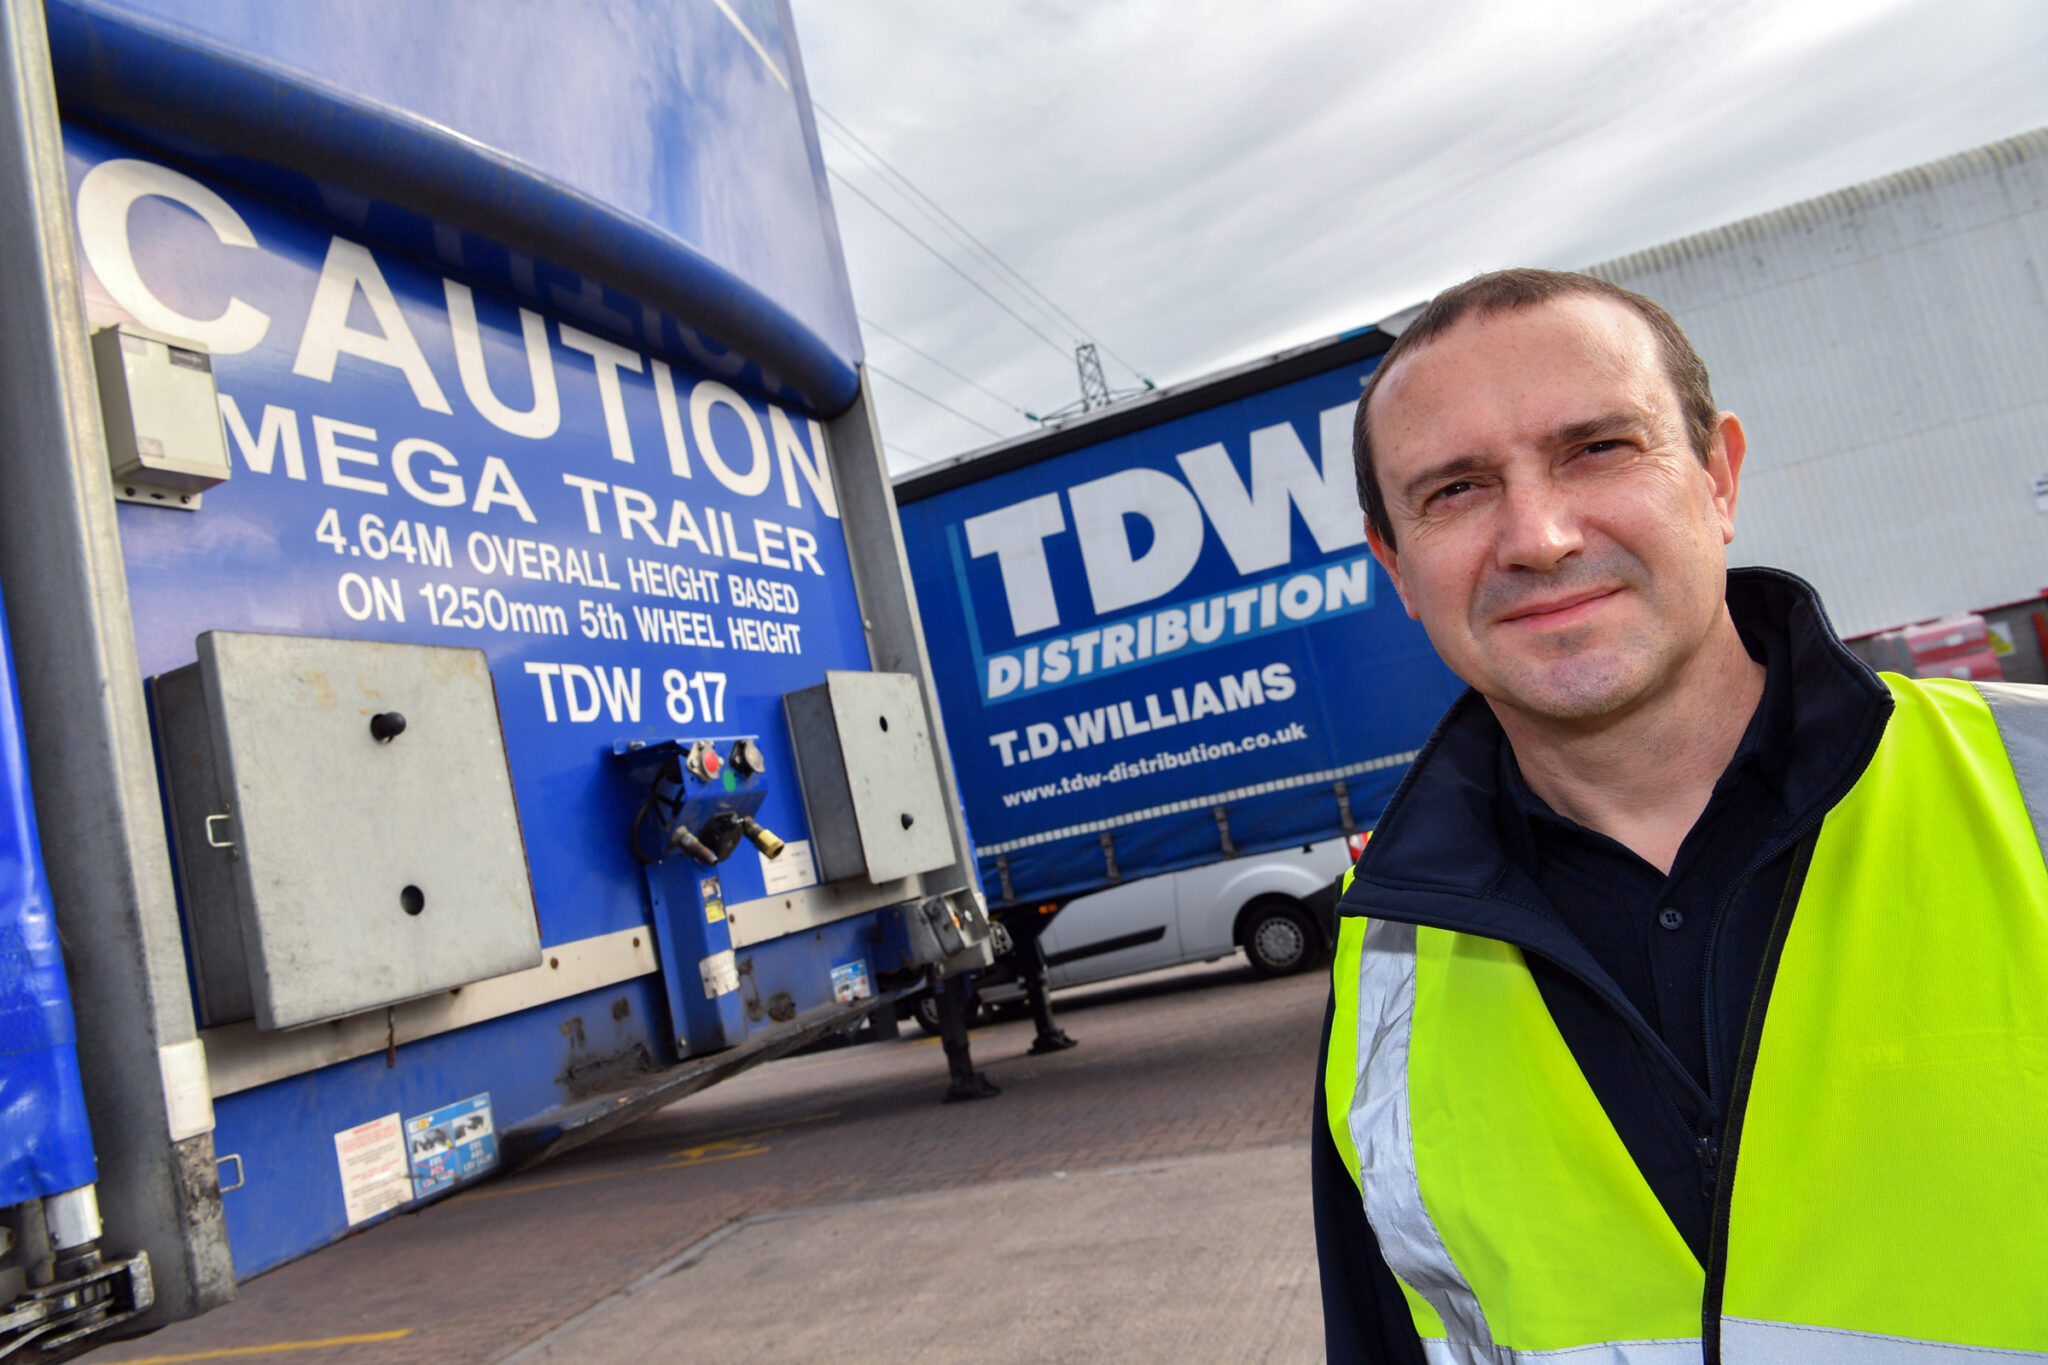 Robert Williams of TDW Distribution with the Mandata trailer tracking system.